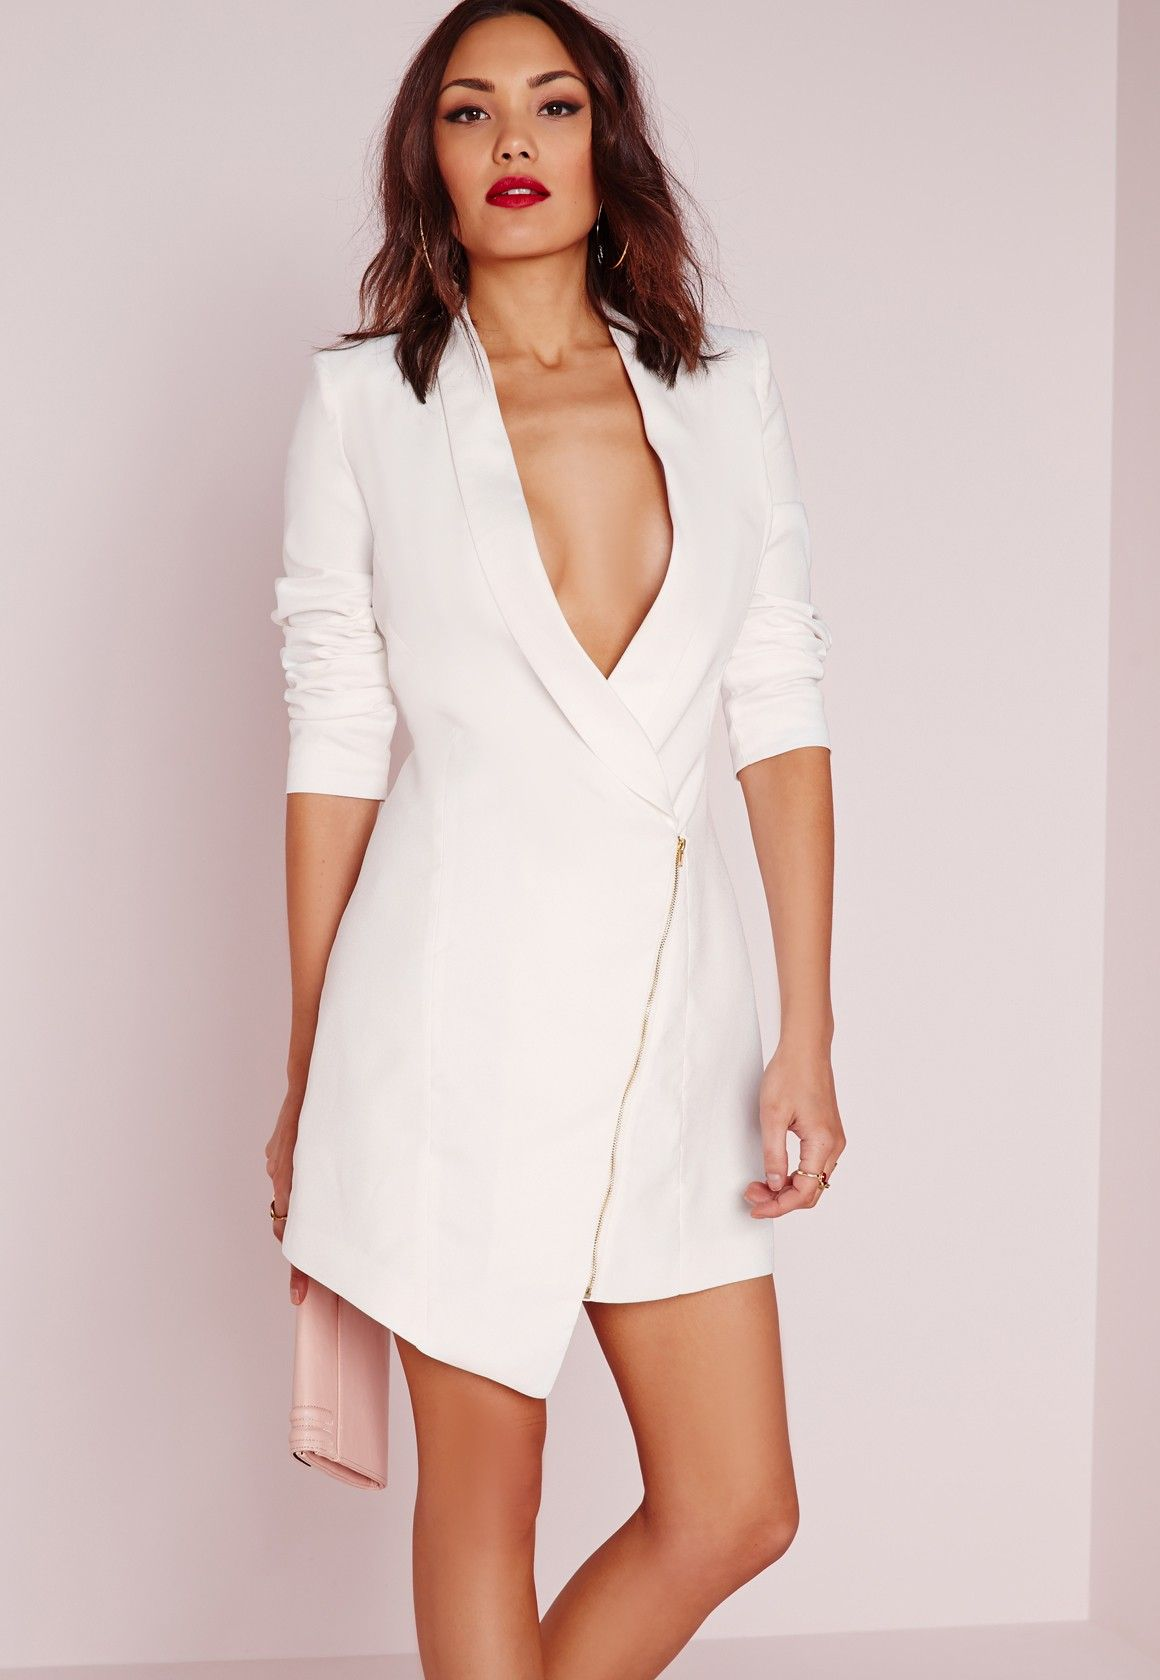 Get your style fix and look fierce this season in this crisp white ...